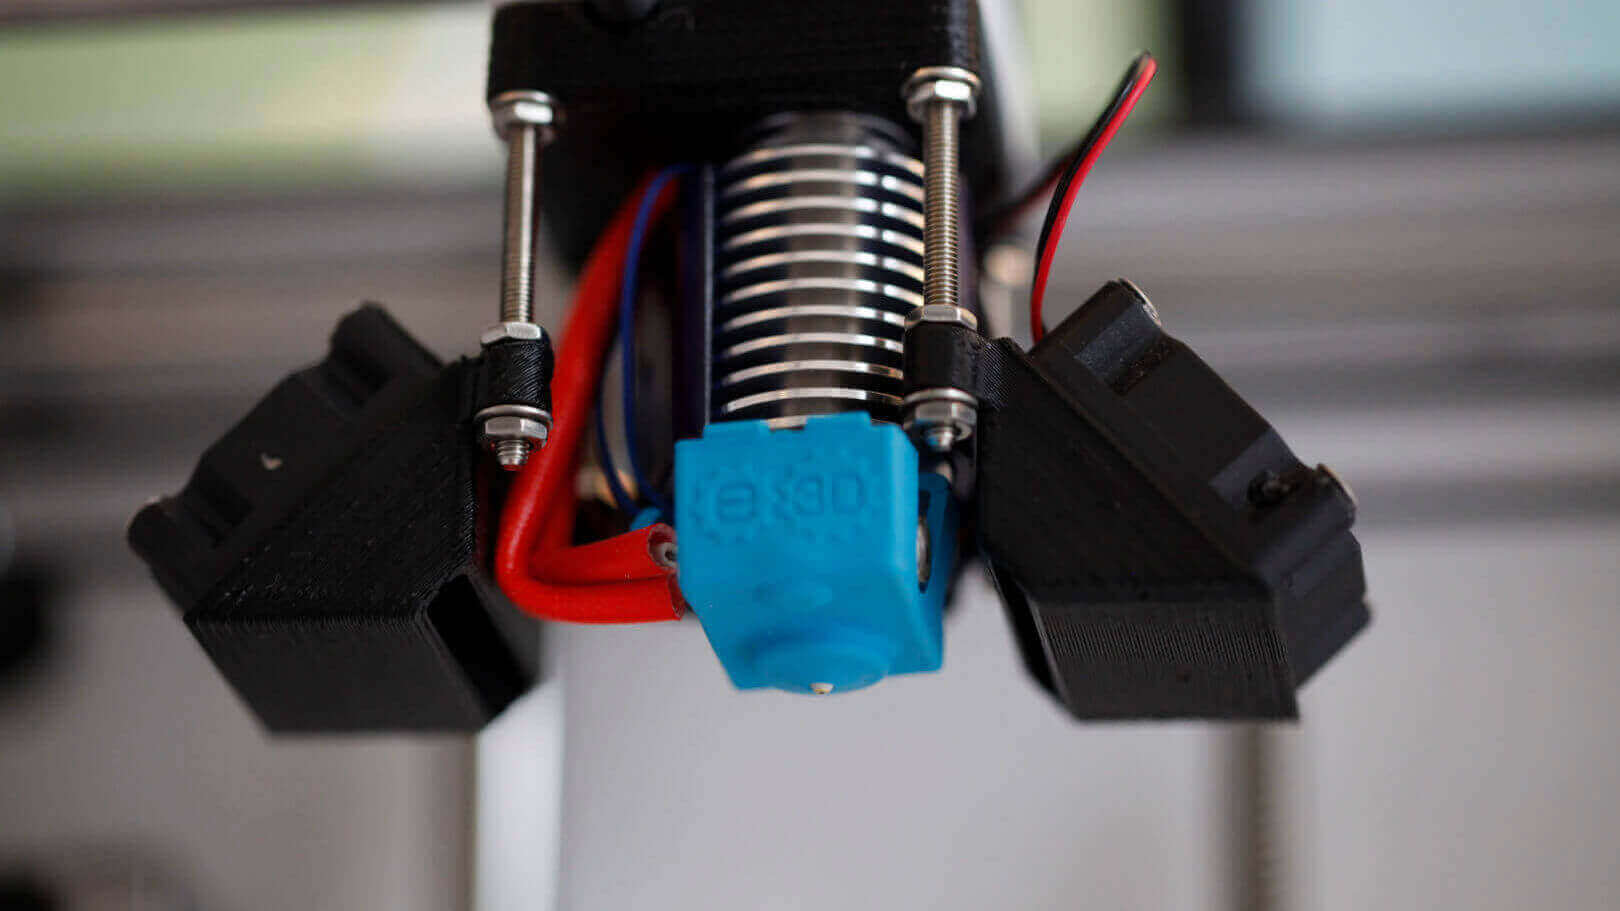 E3D Ultimaker 2 Extrusion Upgrade Kit Review: The Ultimate Ultimaker 2 Upgrade? | All3DP